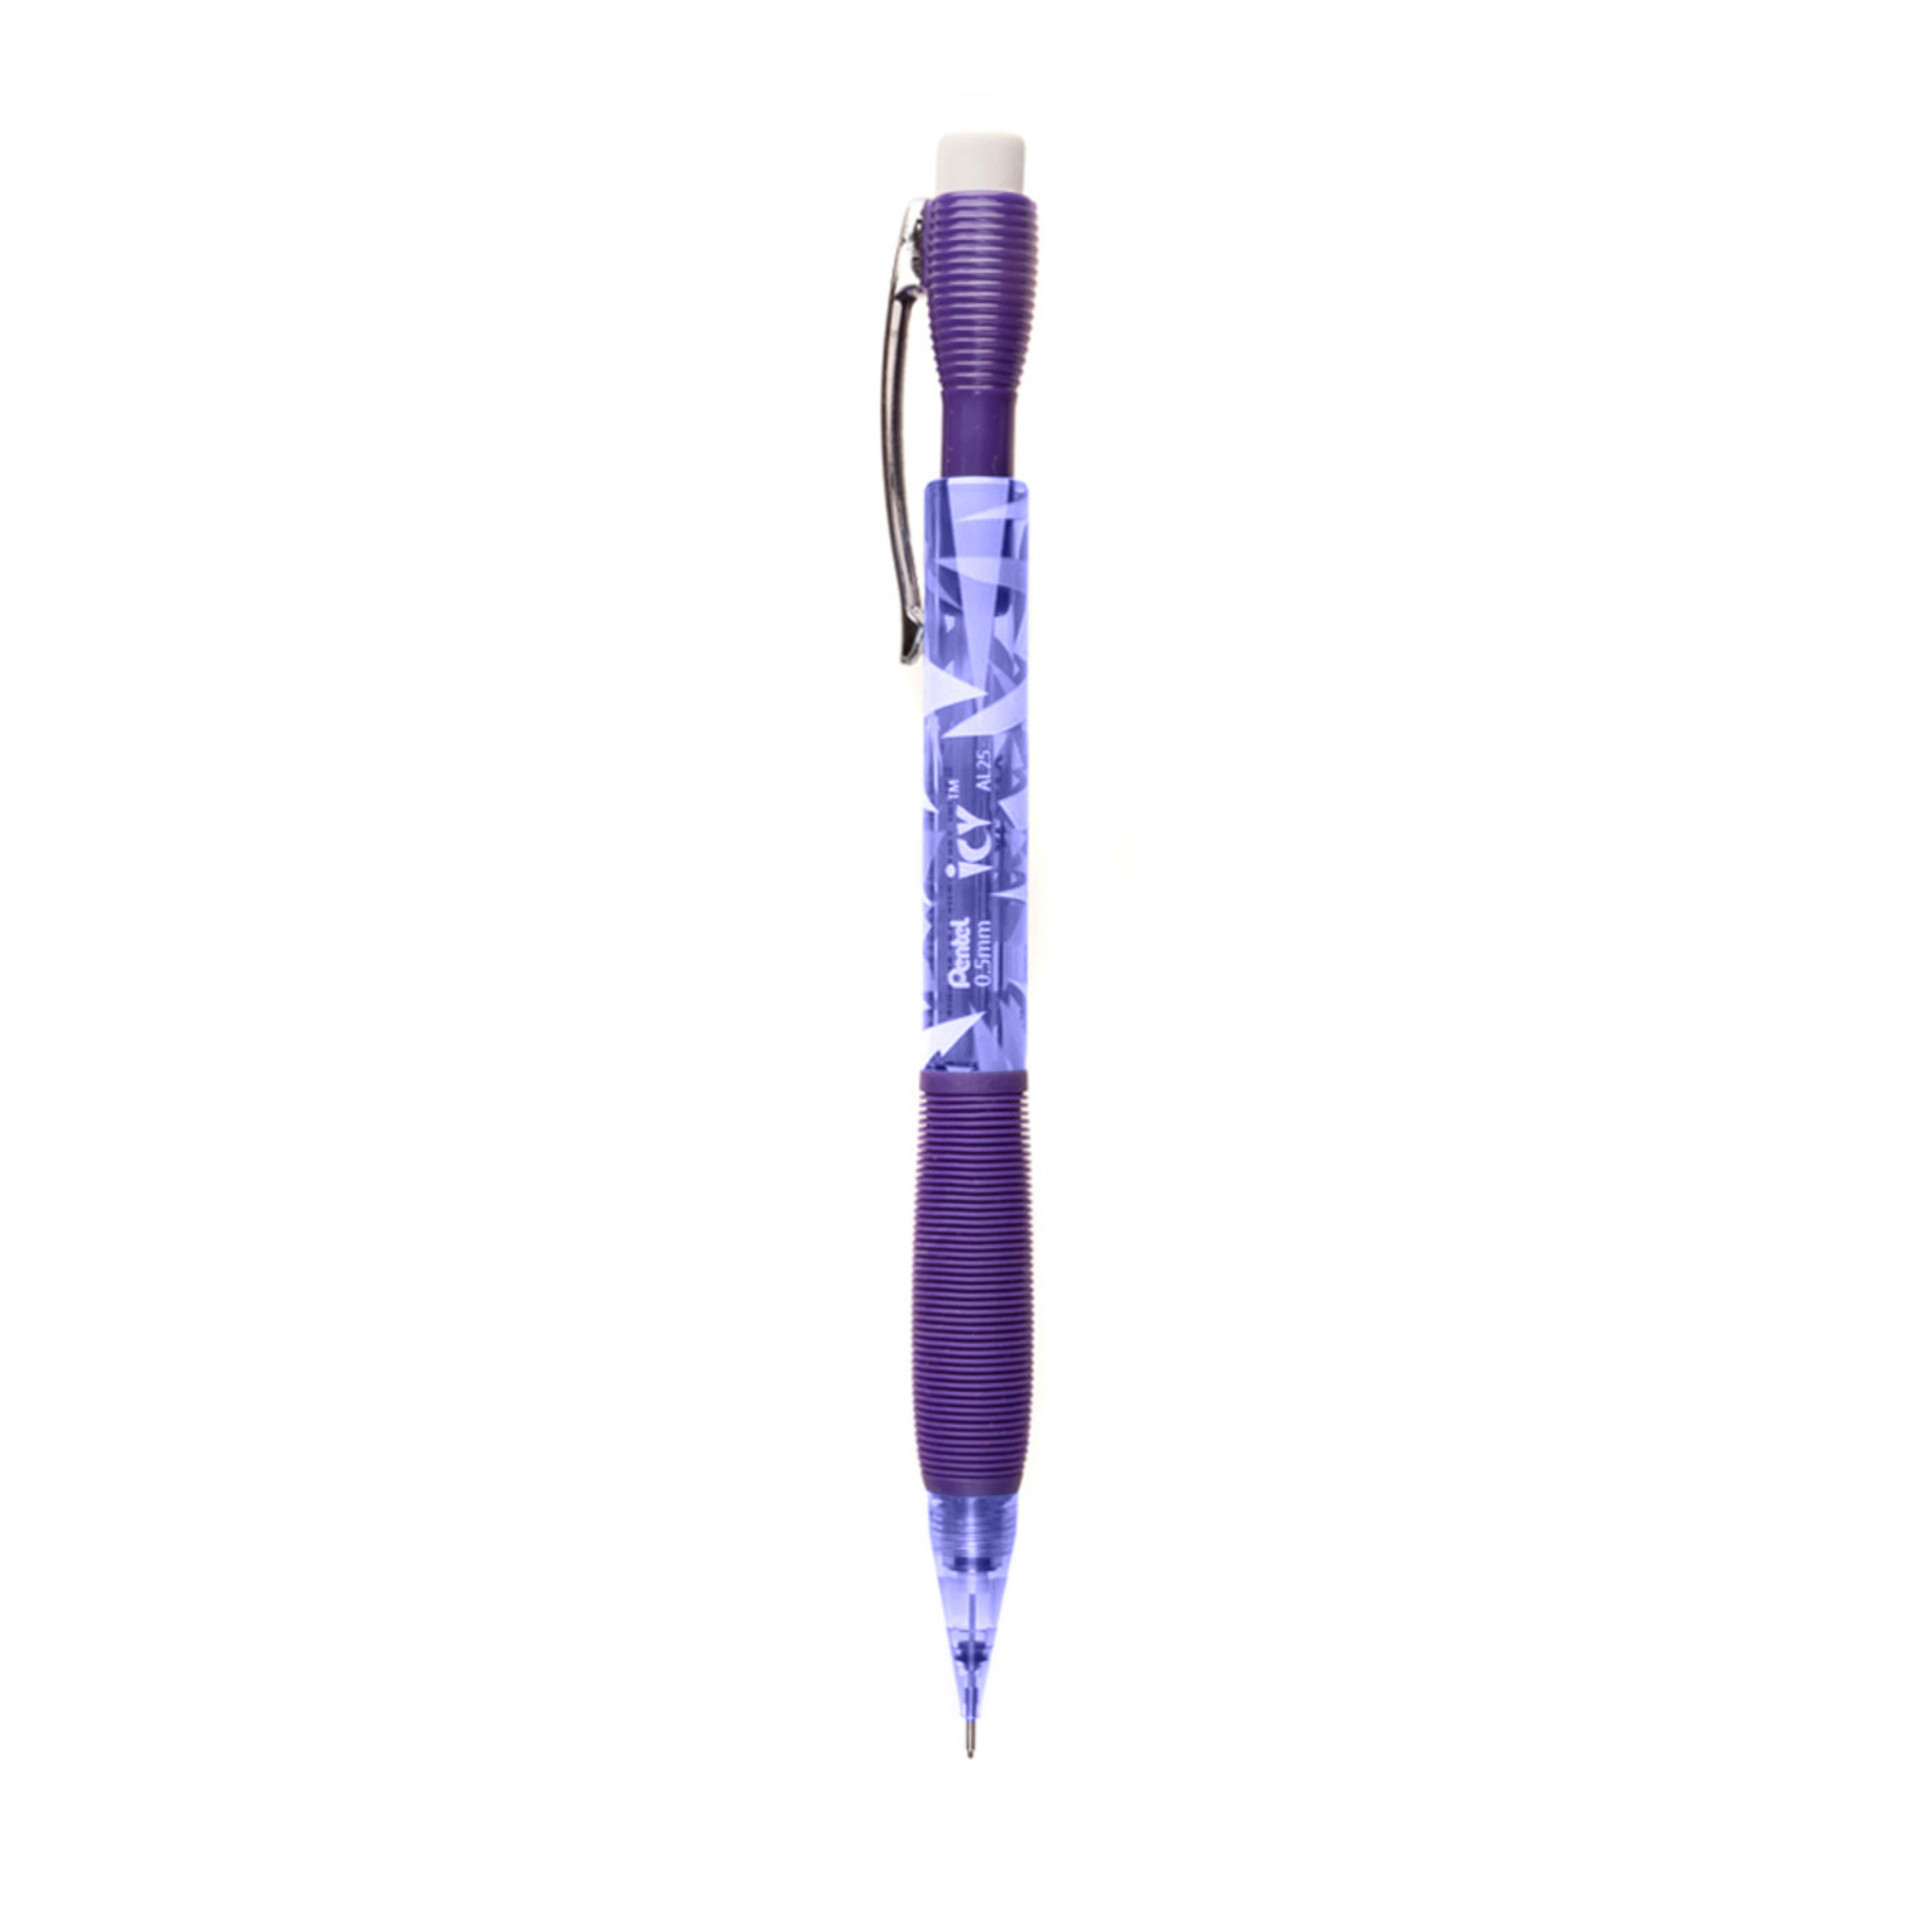 Pentel Icy Mechanical Pencil 0.5mm Violet Side